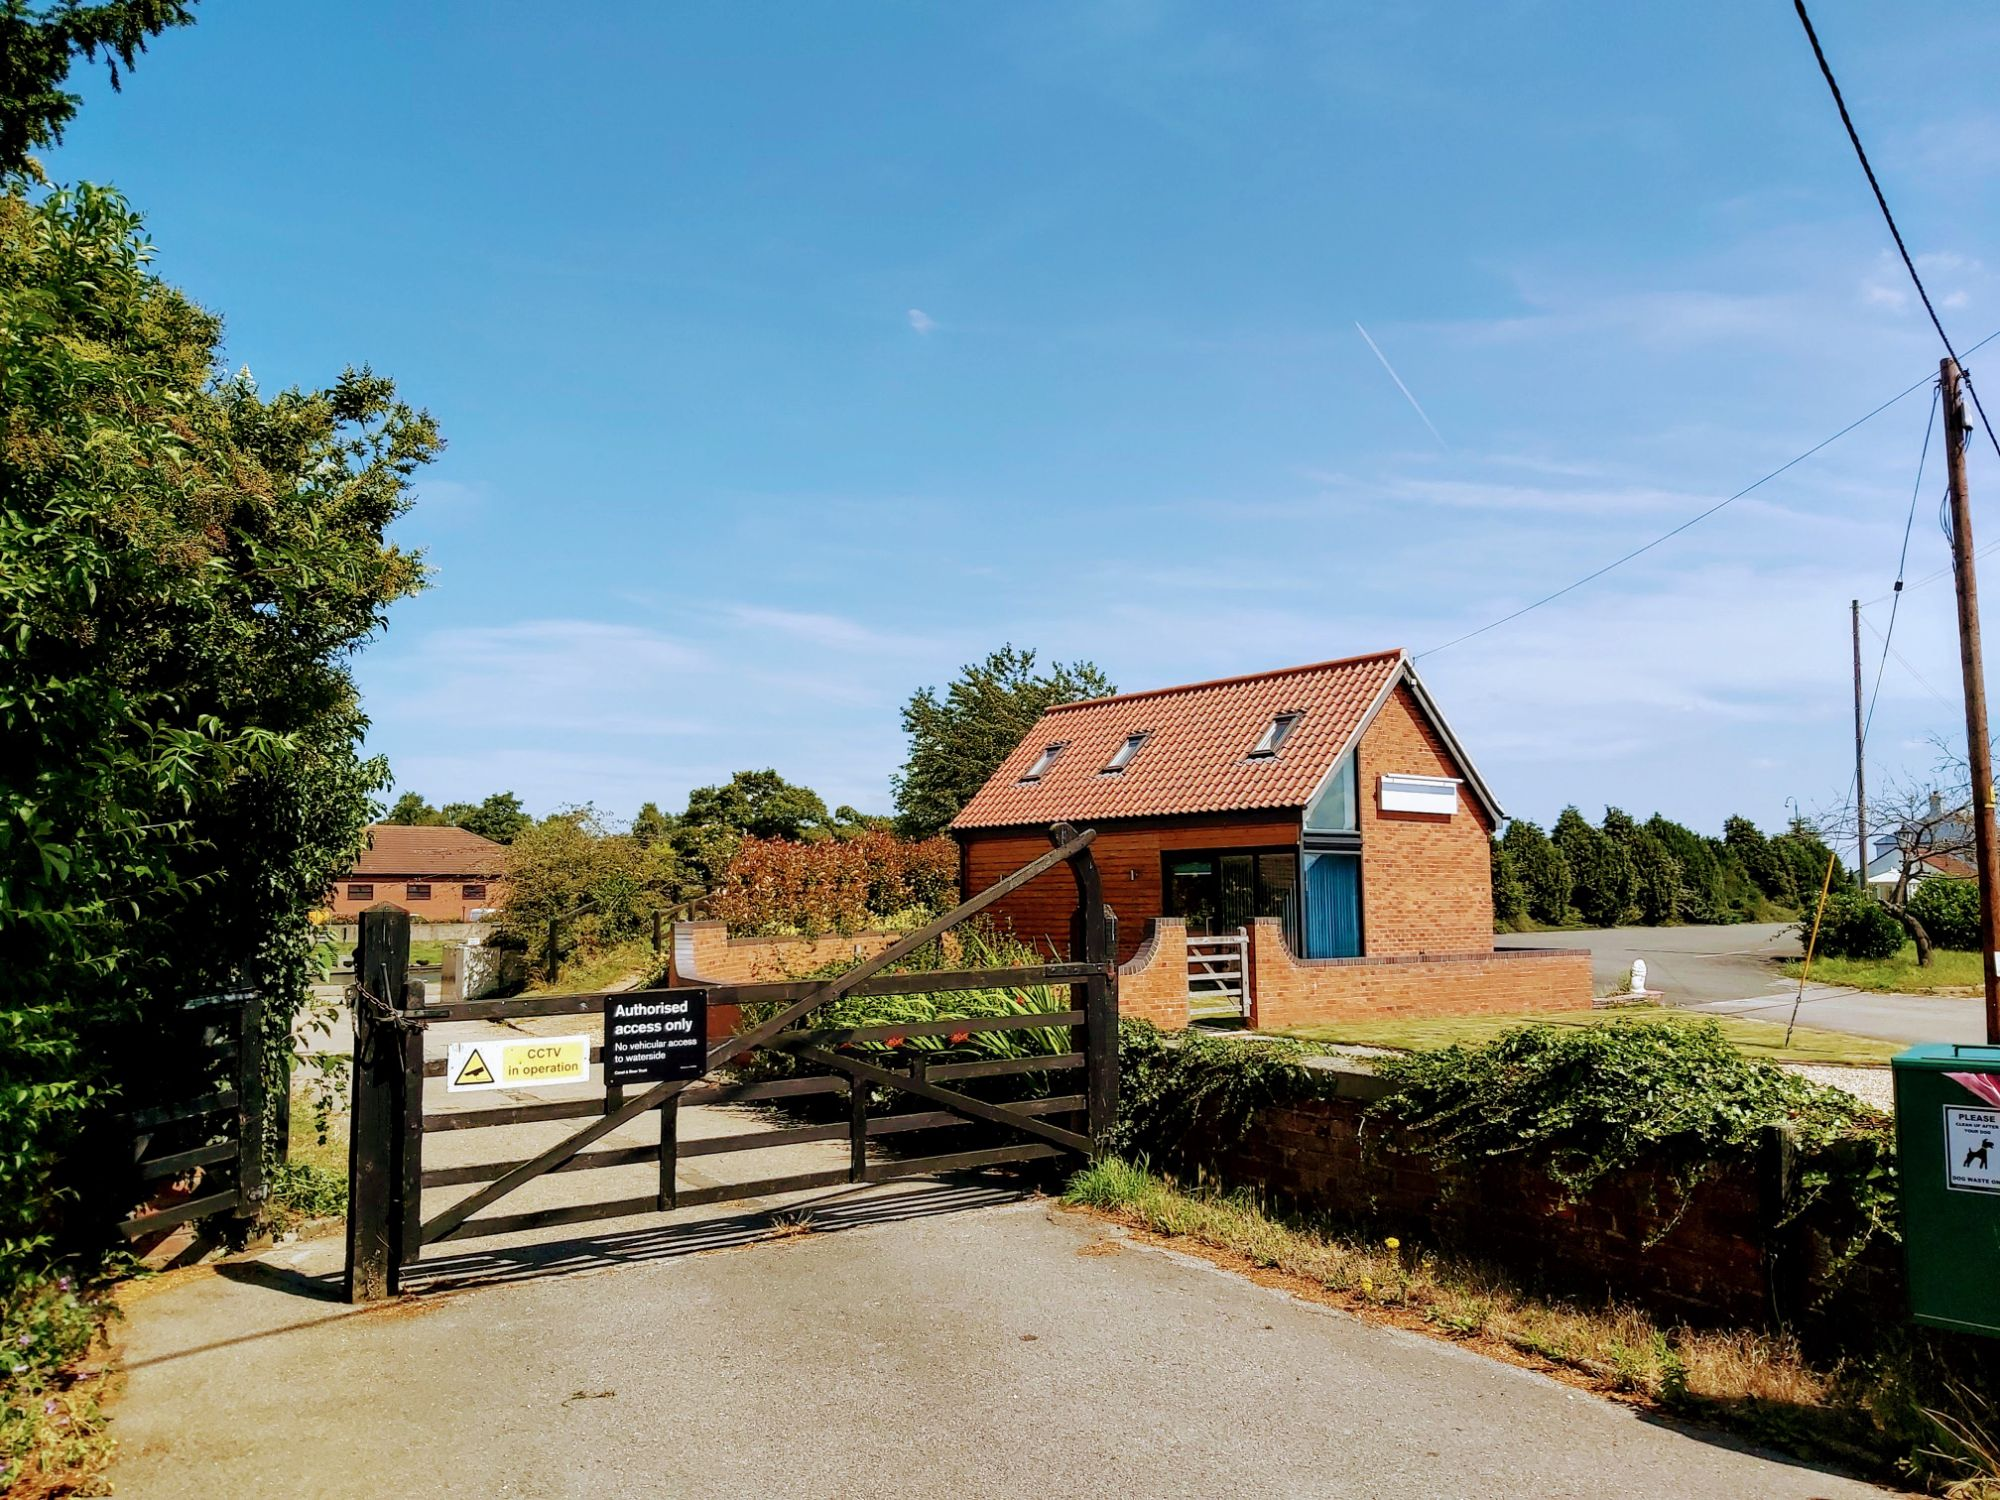 Planning permission granted to form a new holiday let and construct a new holiday lodge at Torksey Lock near Lincoln